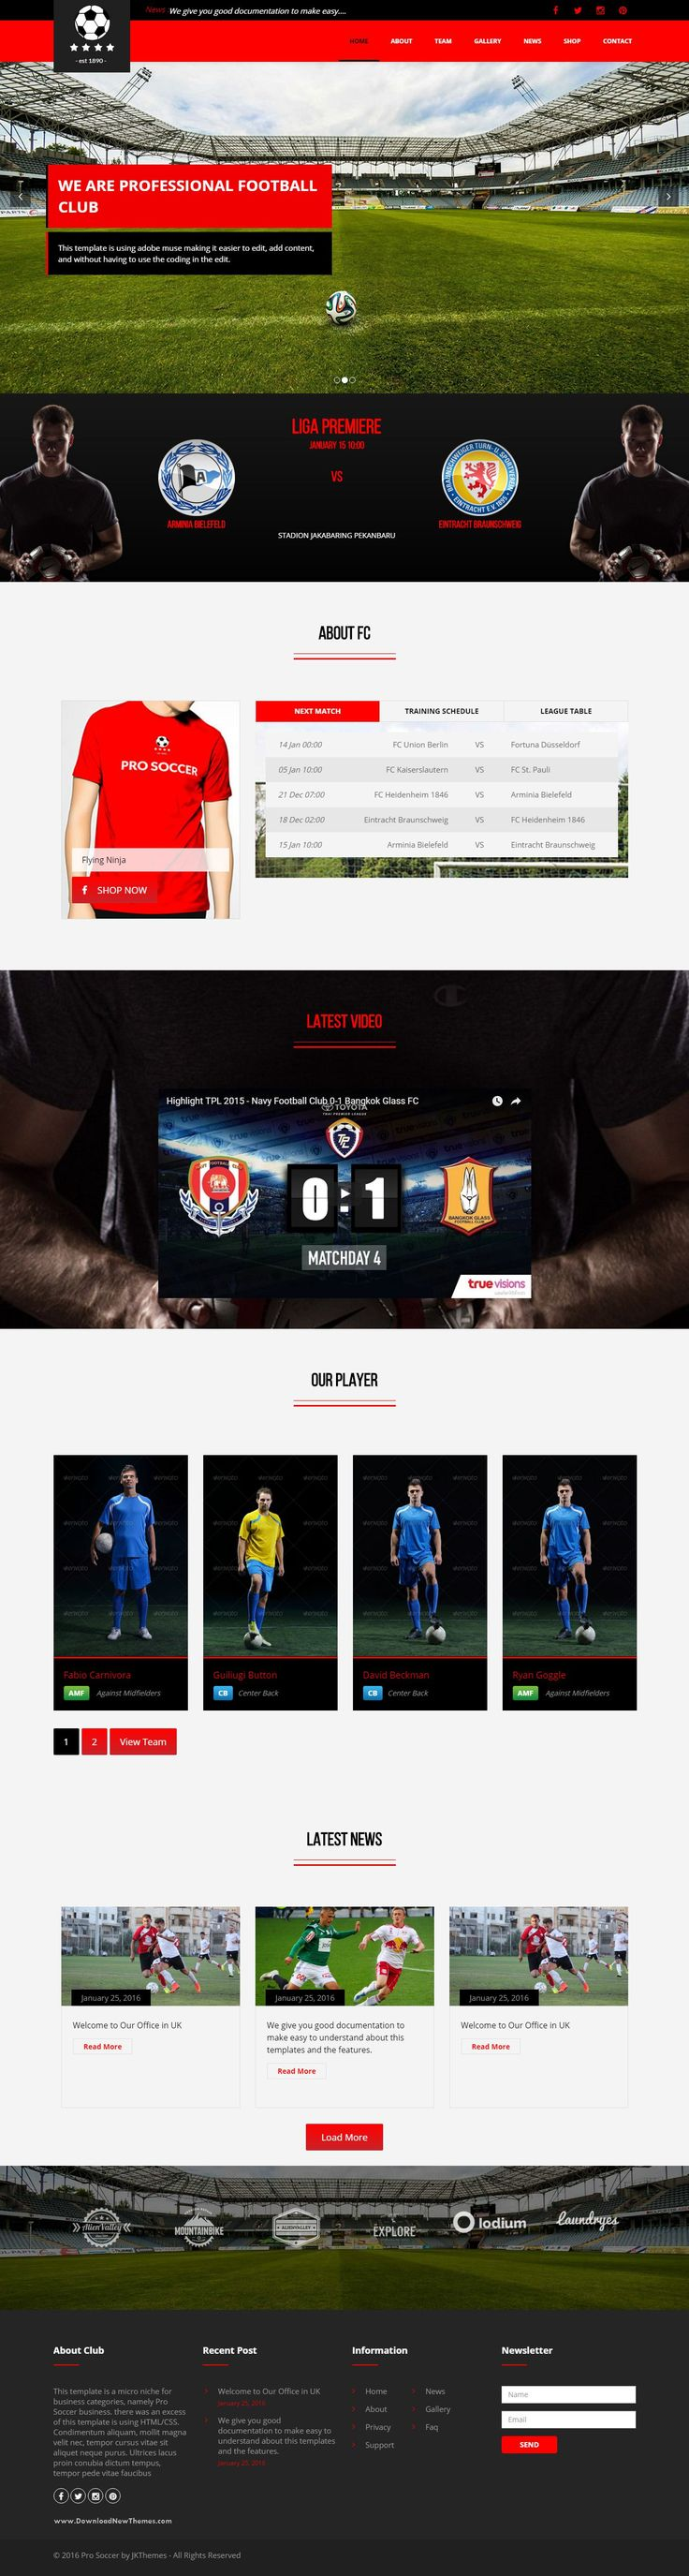 Pro Soccer Best Football Club WordPress Theme Download #soccer #sports #website